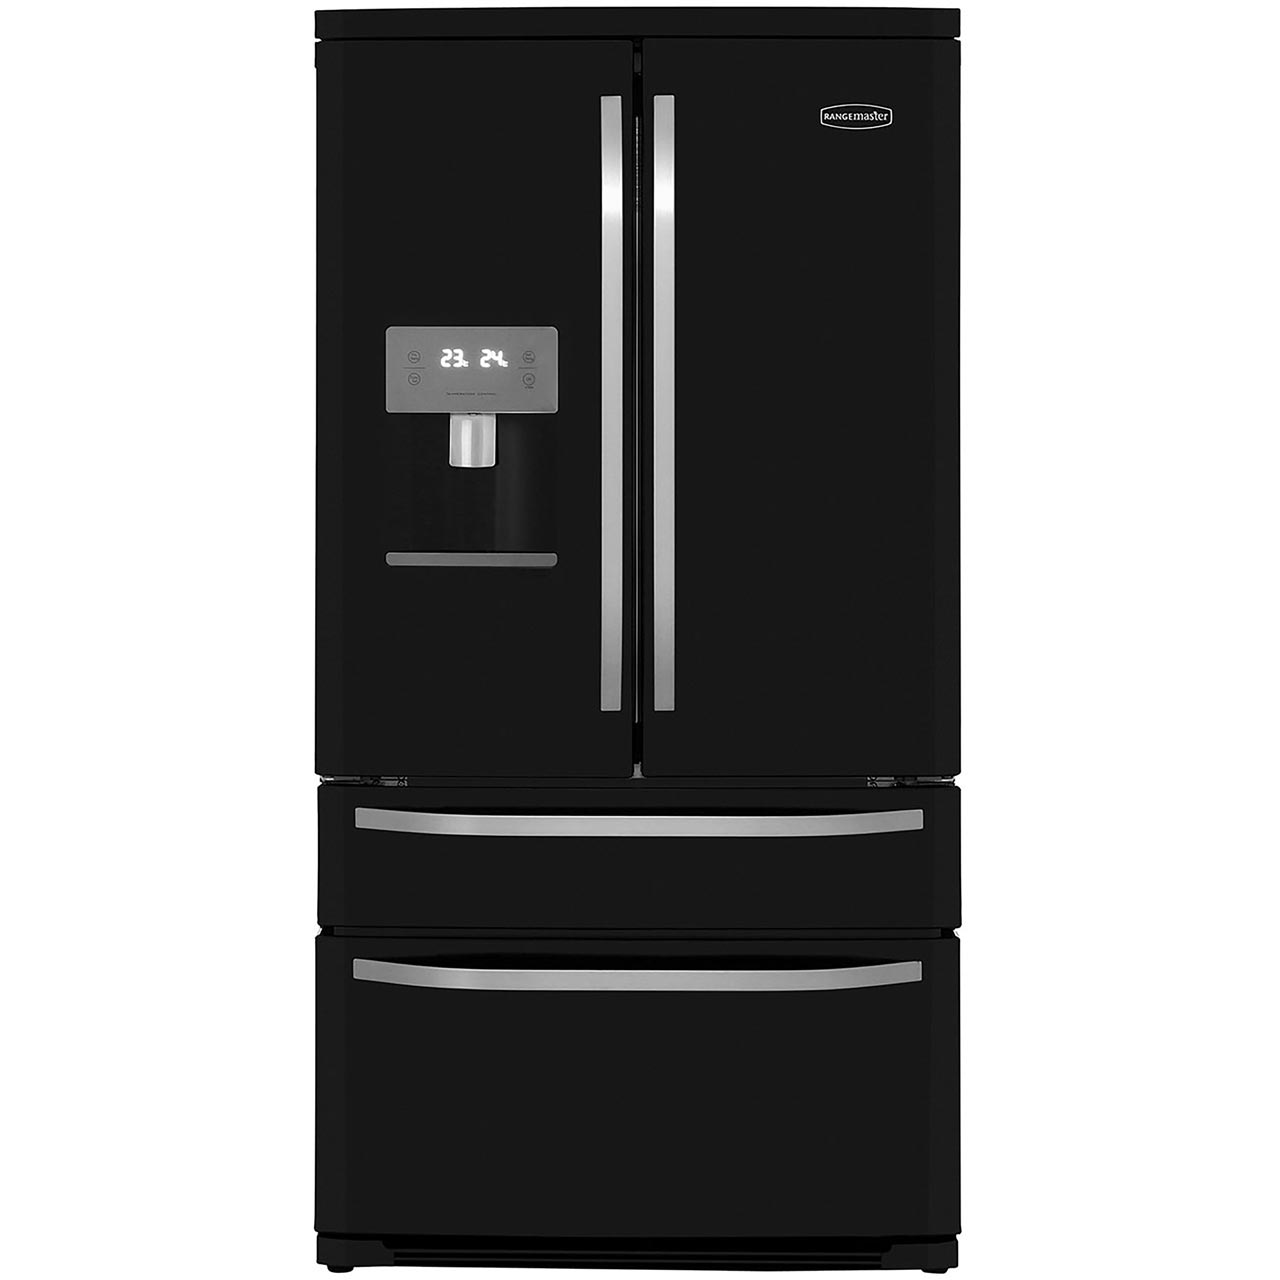 American Fridge Freezer With Drawers Part - 35: Rangemaster DXD RDXD15BL/C American Fridge Freezer - Black / Chrome